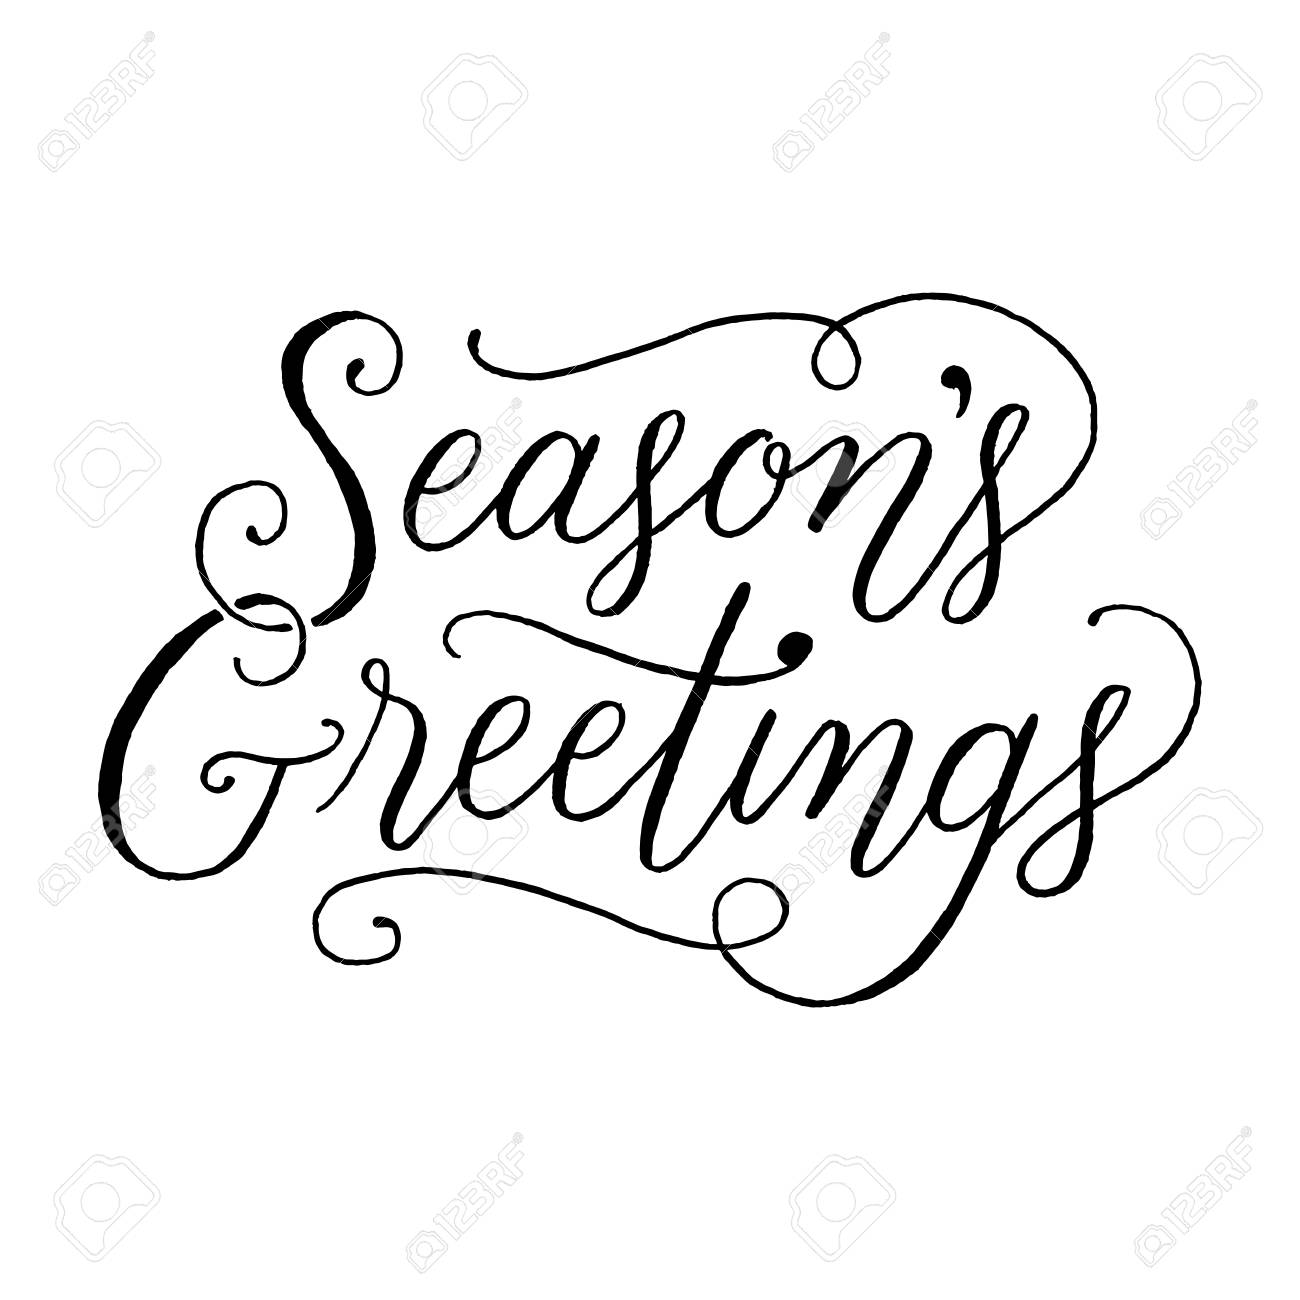 Seasons Greetings Hand Lettering Message Isolated On A White